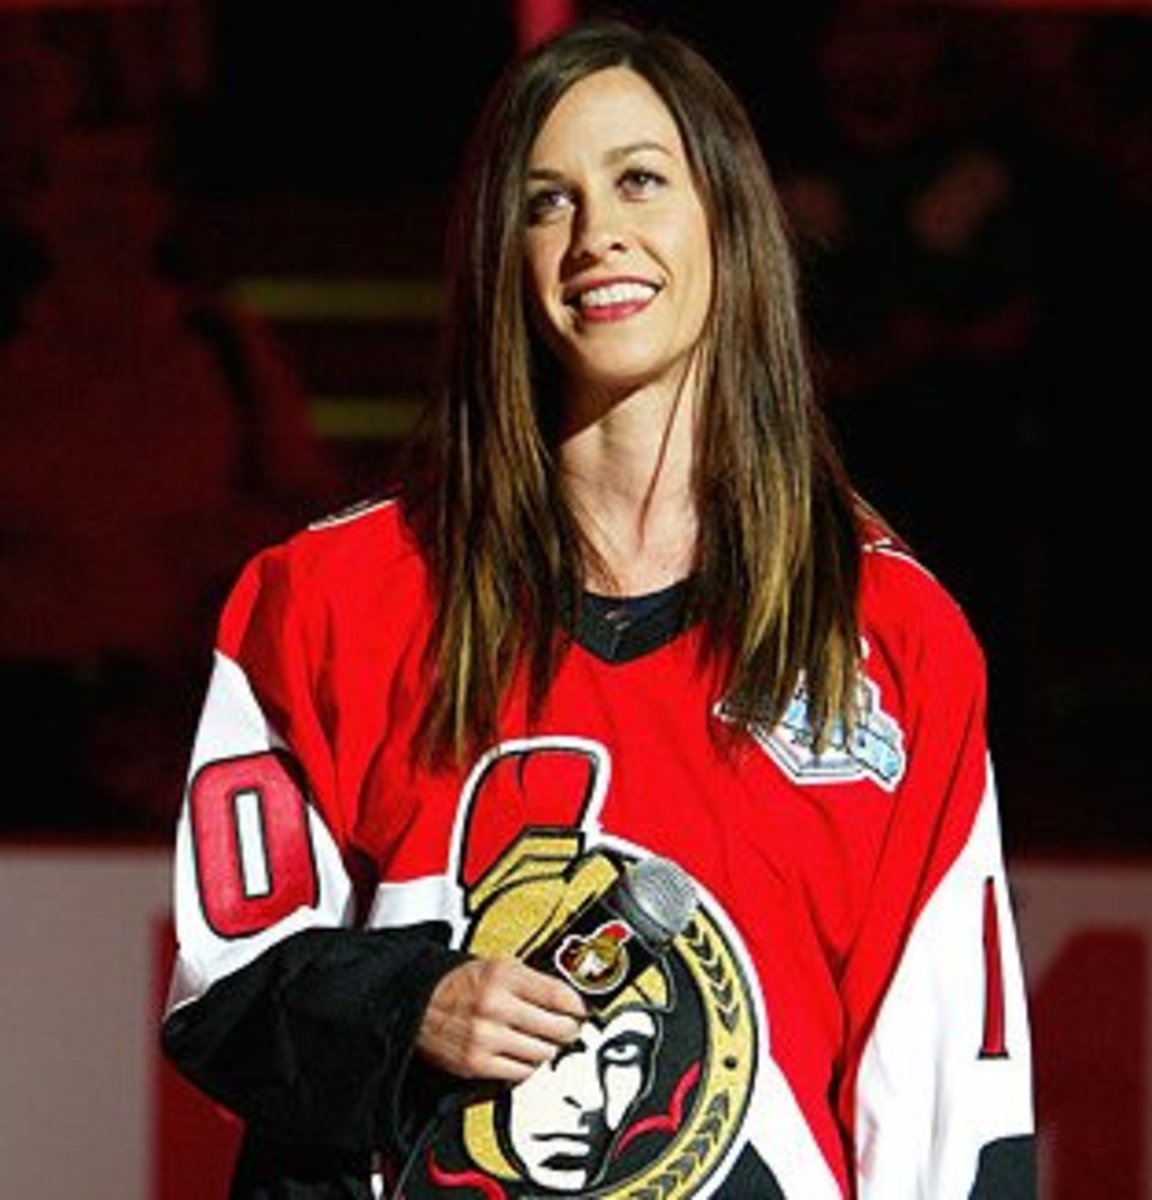 Alanis Morissette at the 2007 Stanley Cup finals between the Anaheim Ducks and the Ottawa Senators in Ottawa